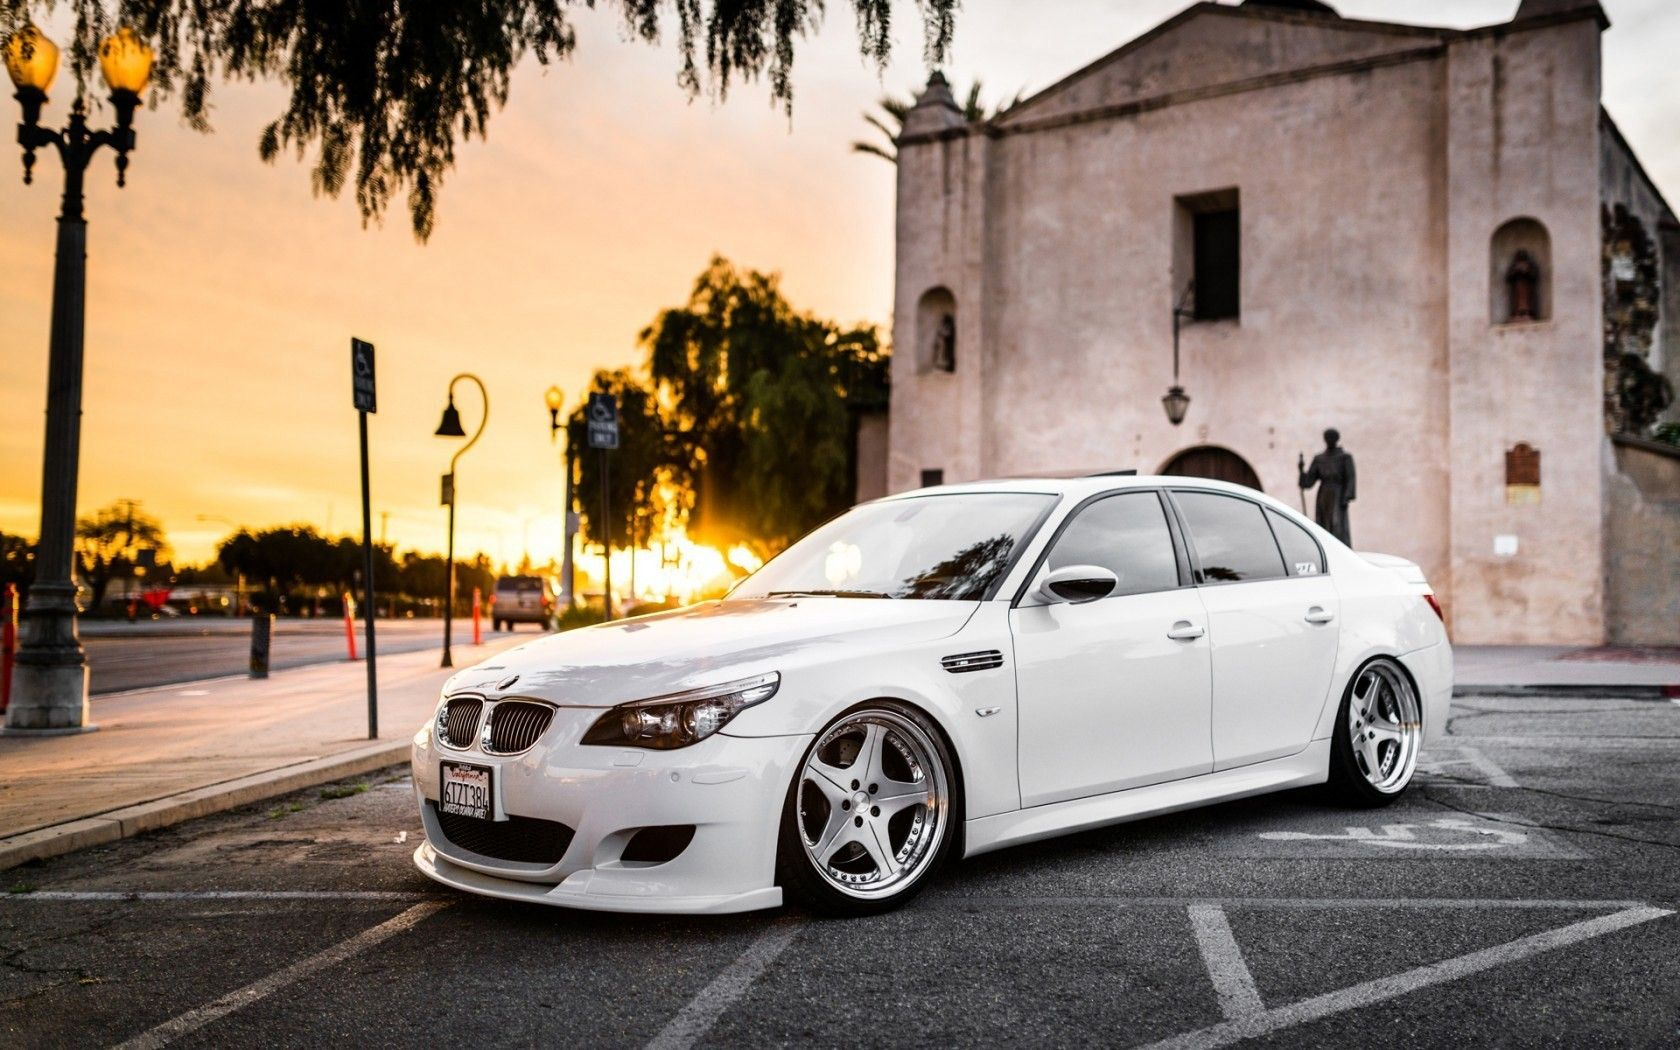 bmw m5 tuning city hd wallpaper | Cars HD Wallpapers | Bmw ...